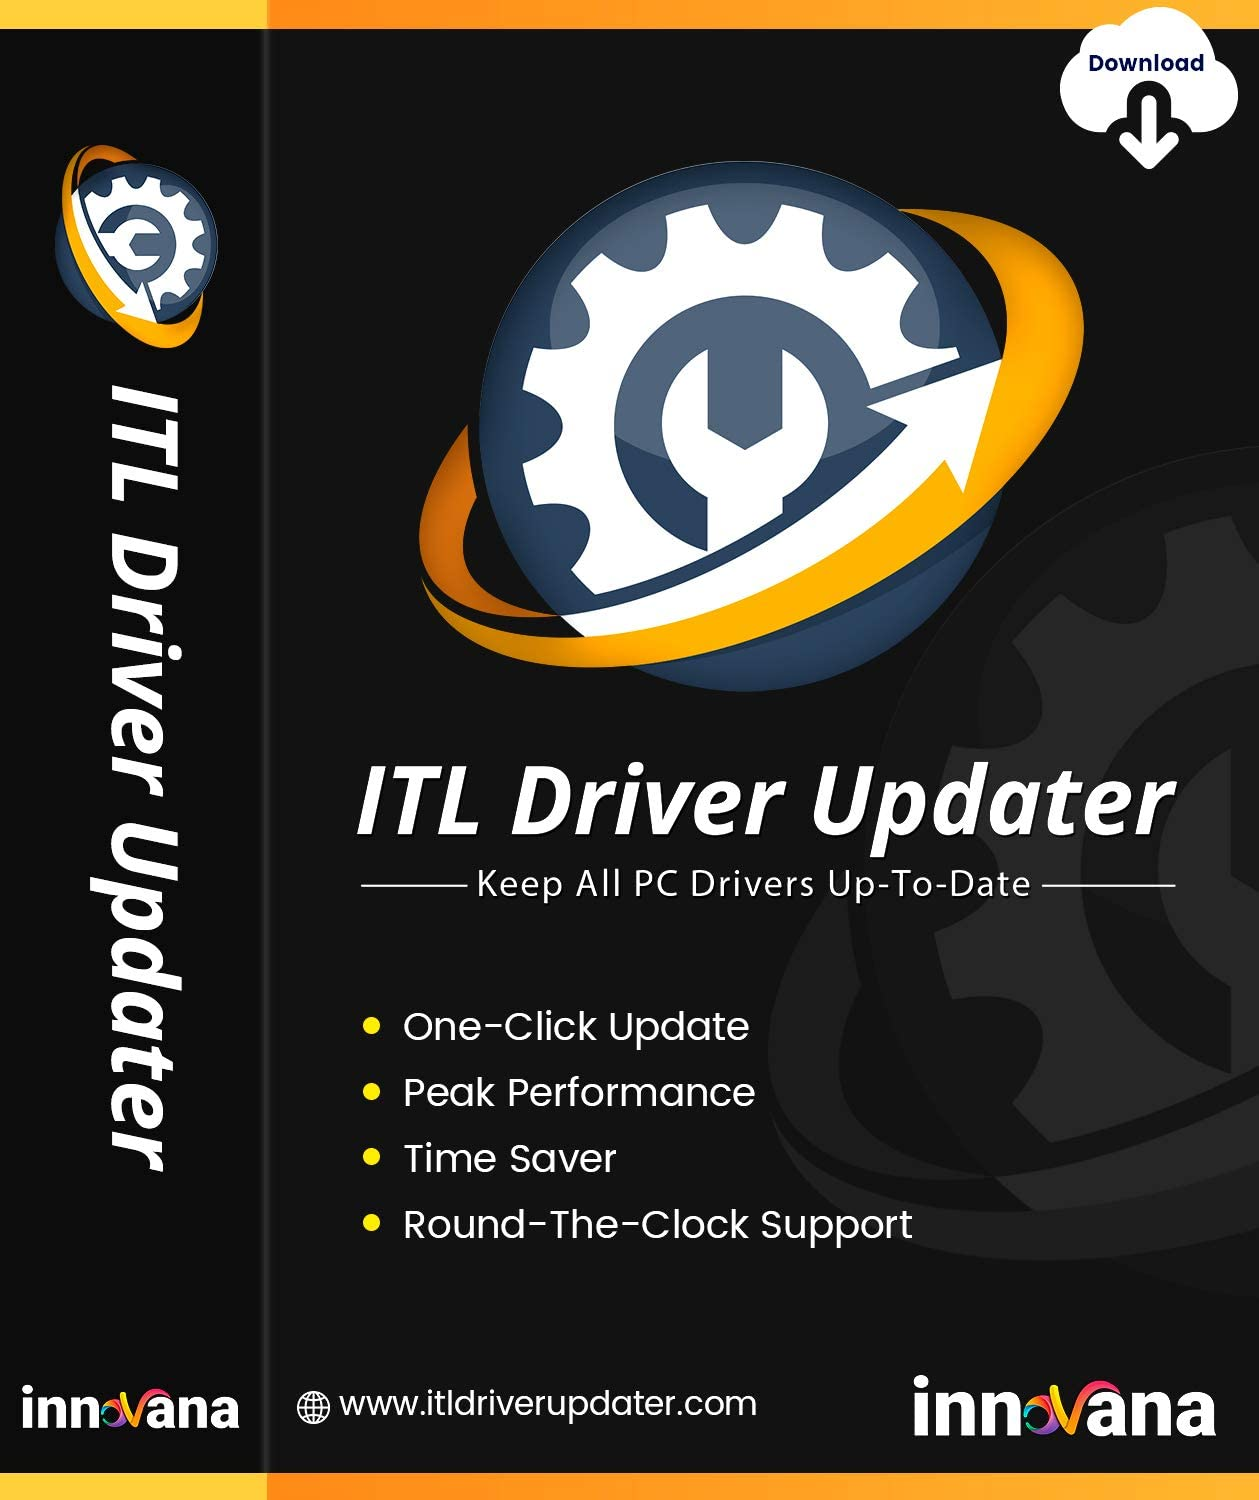 ITL Driver Updater | Windows Performance Booster Software [DOWNLOAD] [NO CD] 71q3itnO-ILSL1500_